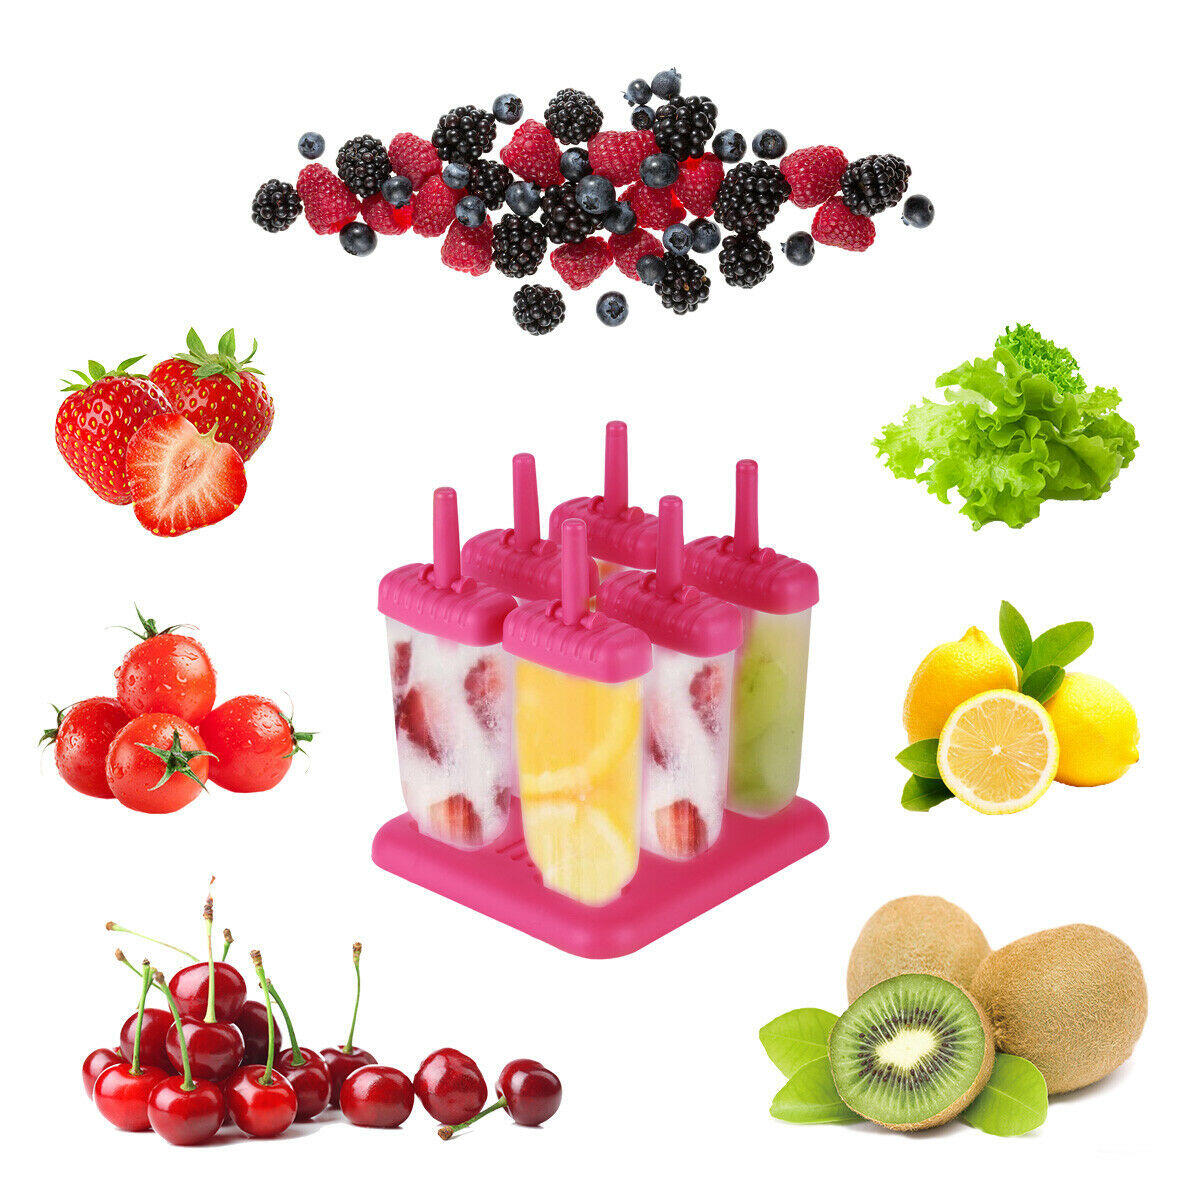 Kitchen Ice Cream Maker Popsicle Mold Set with Tray and Drip Guard 6 Pack Pink